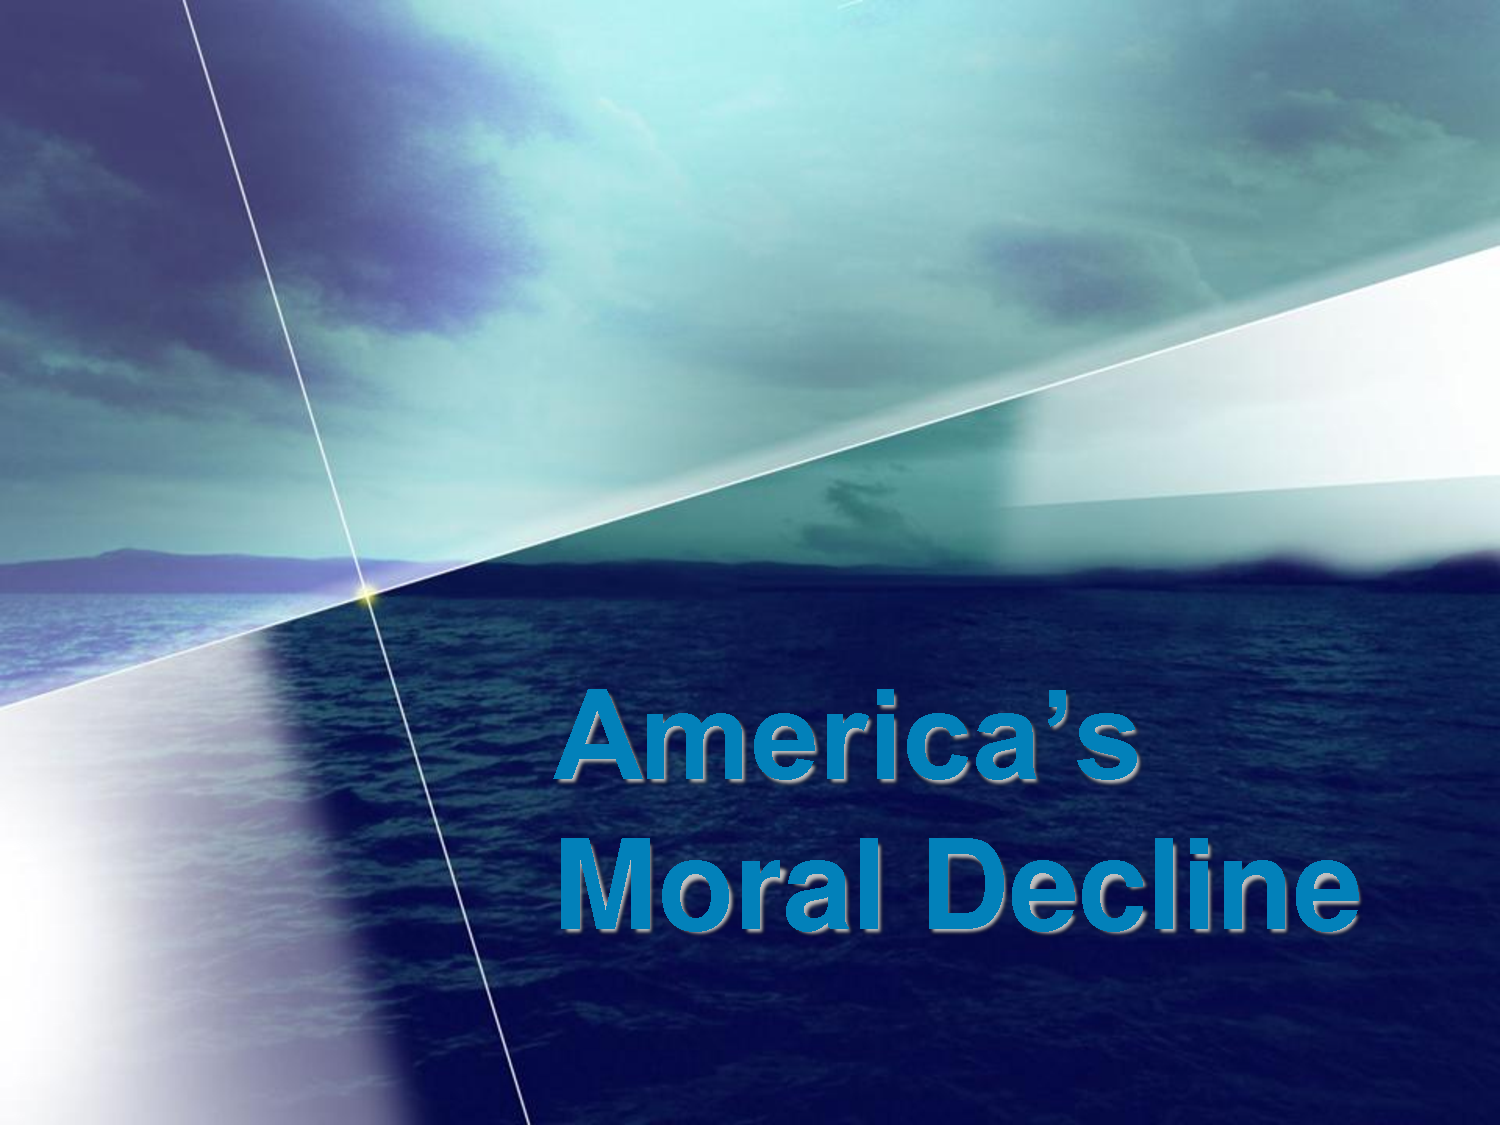 americas moral decline essay In this essay i will discuss why parents have been failing at modeling moral values for children, focusing on parenting time and other family conditions for childrearing in a recent poll of adult americans conducted by the wall street journal, moral decline was stated to be the biggest problem that america will face in the next twenty years.